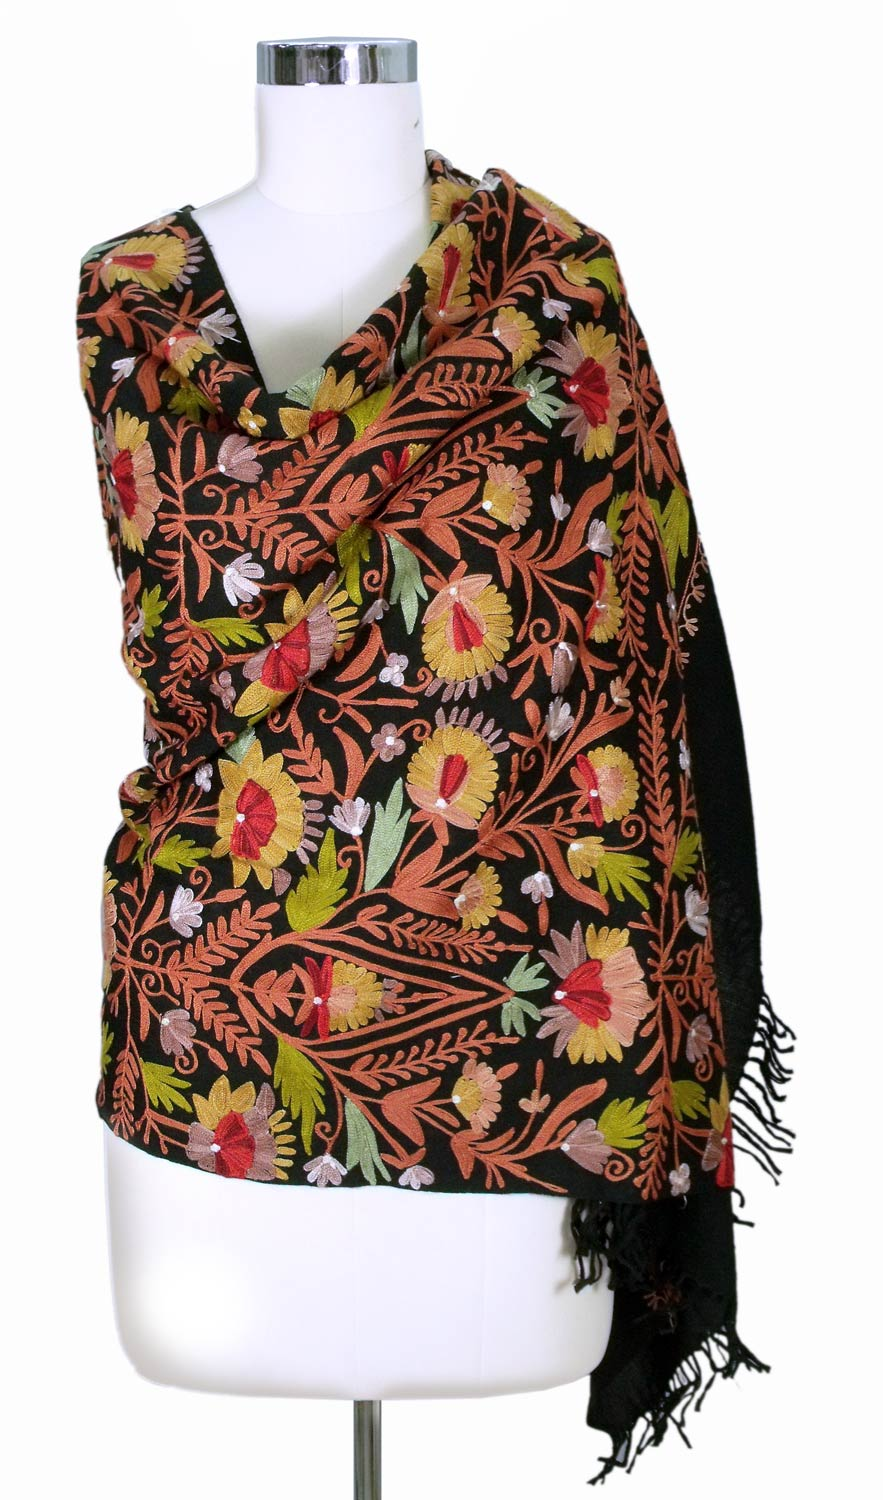 Wild Gardens Artisan Crafted Floral Wool Embroidered Shawl the shawl and scarf